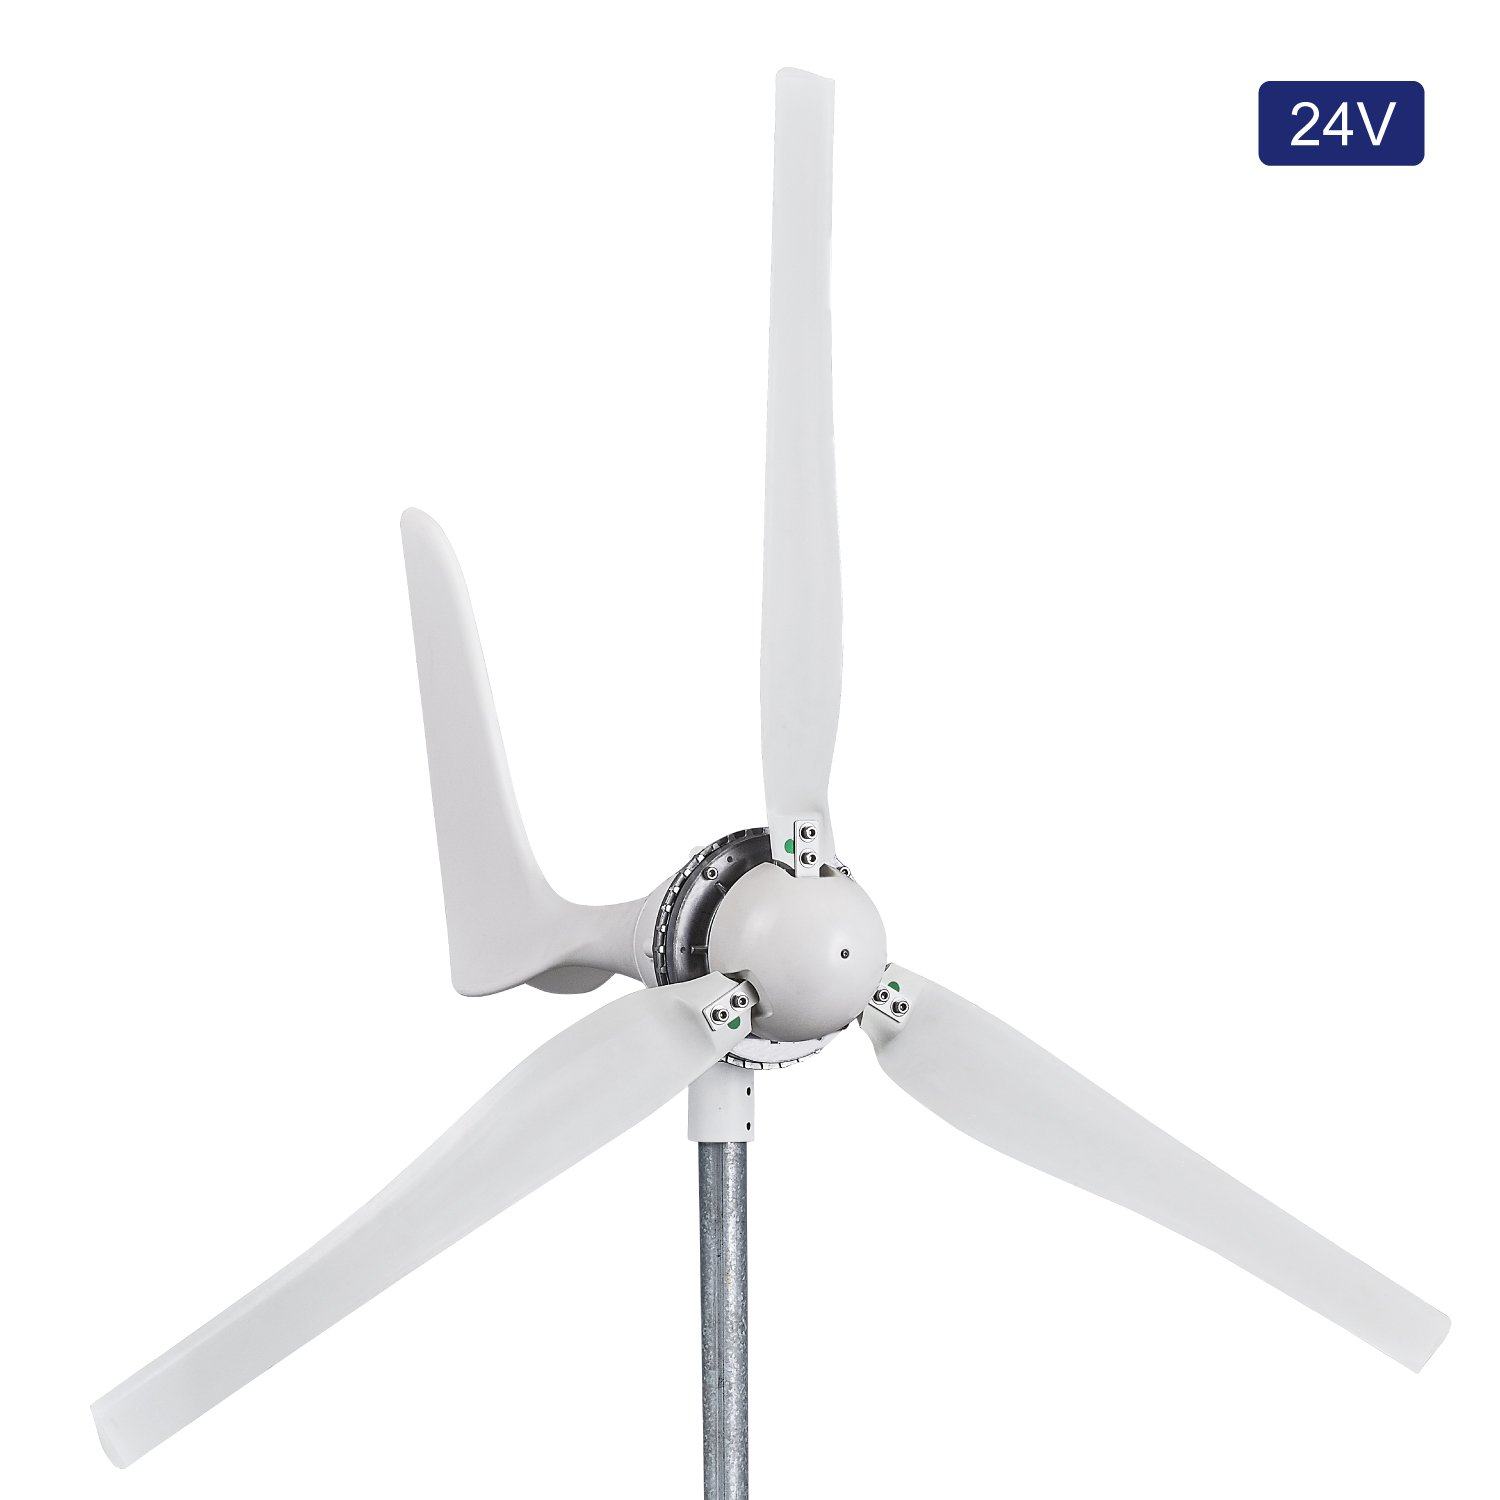 Amazon.com : Automaxx Windmill 1200W 24V 42A Wind Turbine Generator kit.  MPPT Charge Controller Included (Amp, Volt & Watt Display) + Automatic and  Manual ...